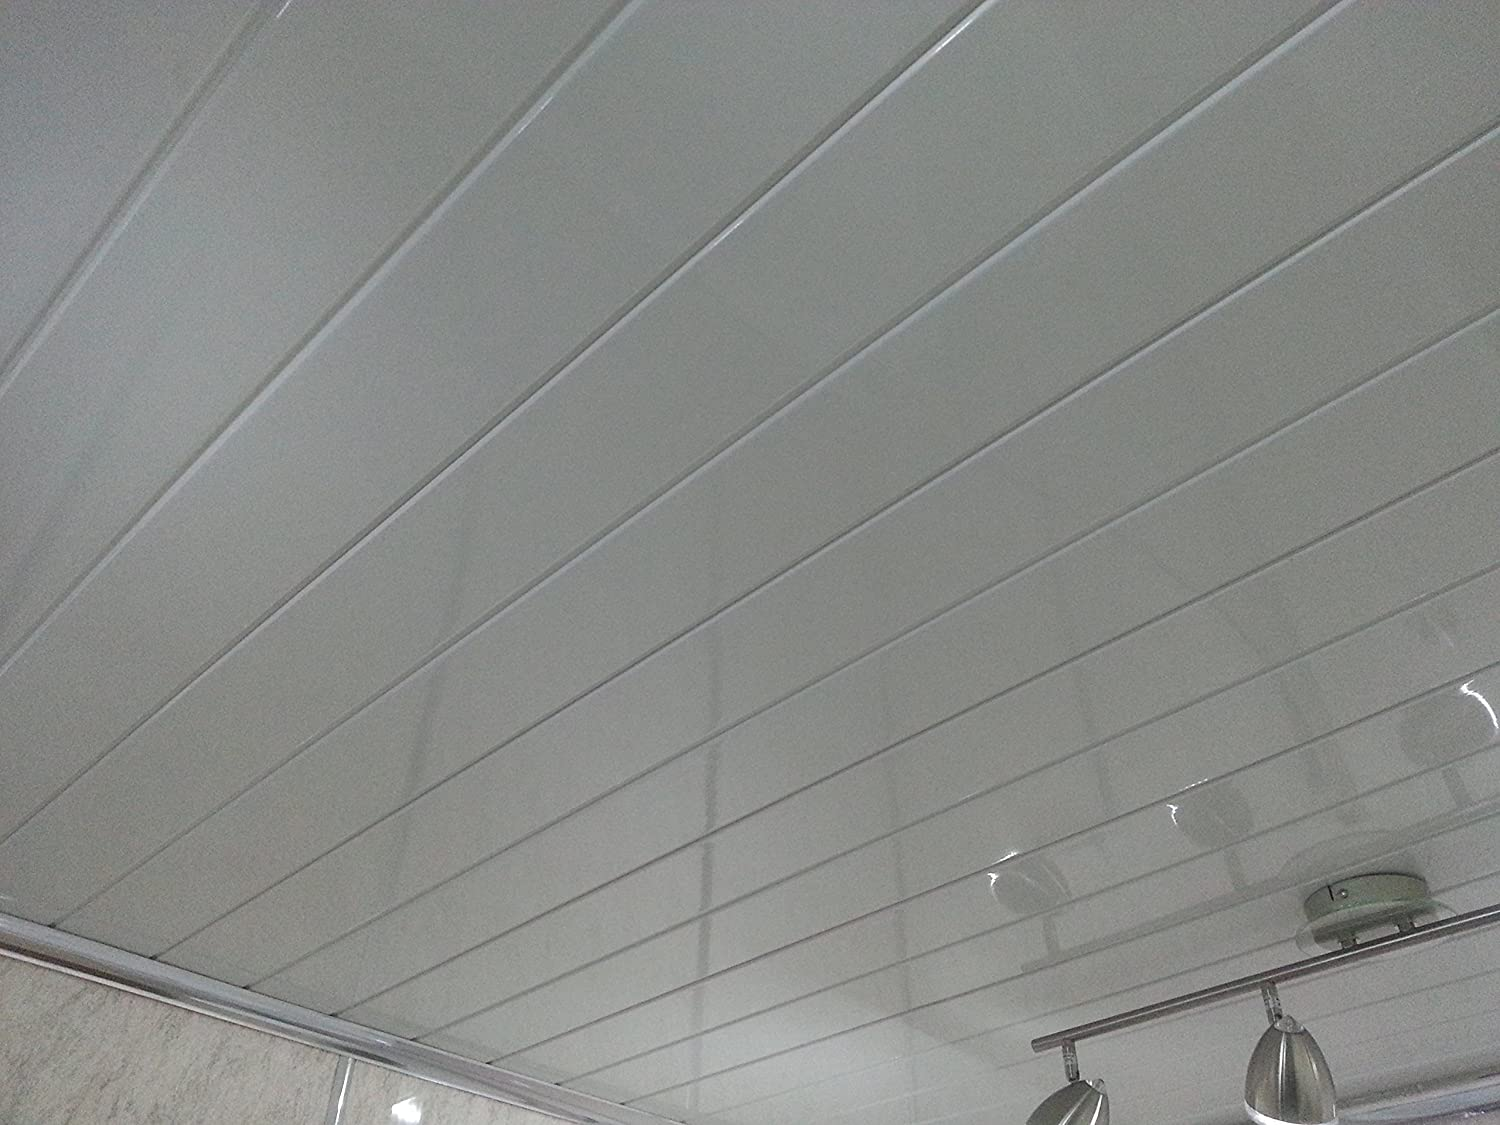 Bathroom ceiling panel - 10 Twin White Pvc Bathroom Cladding Shower Wall Ceiling Panels Amazon Co Uk Kitchen Home